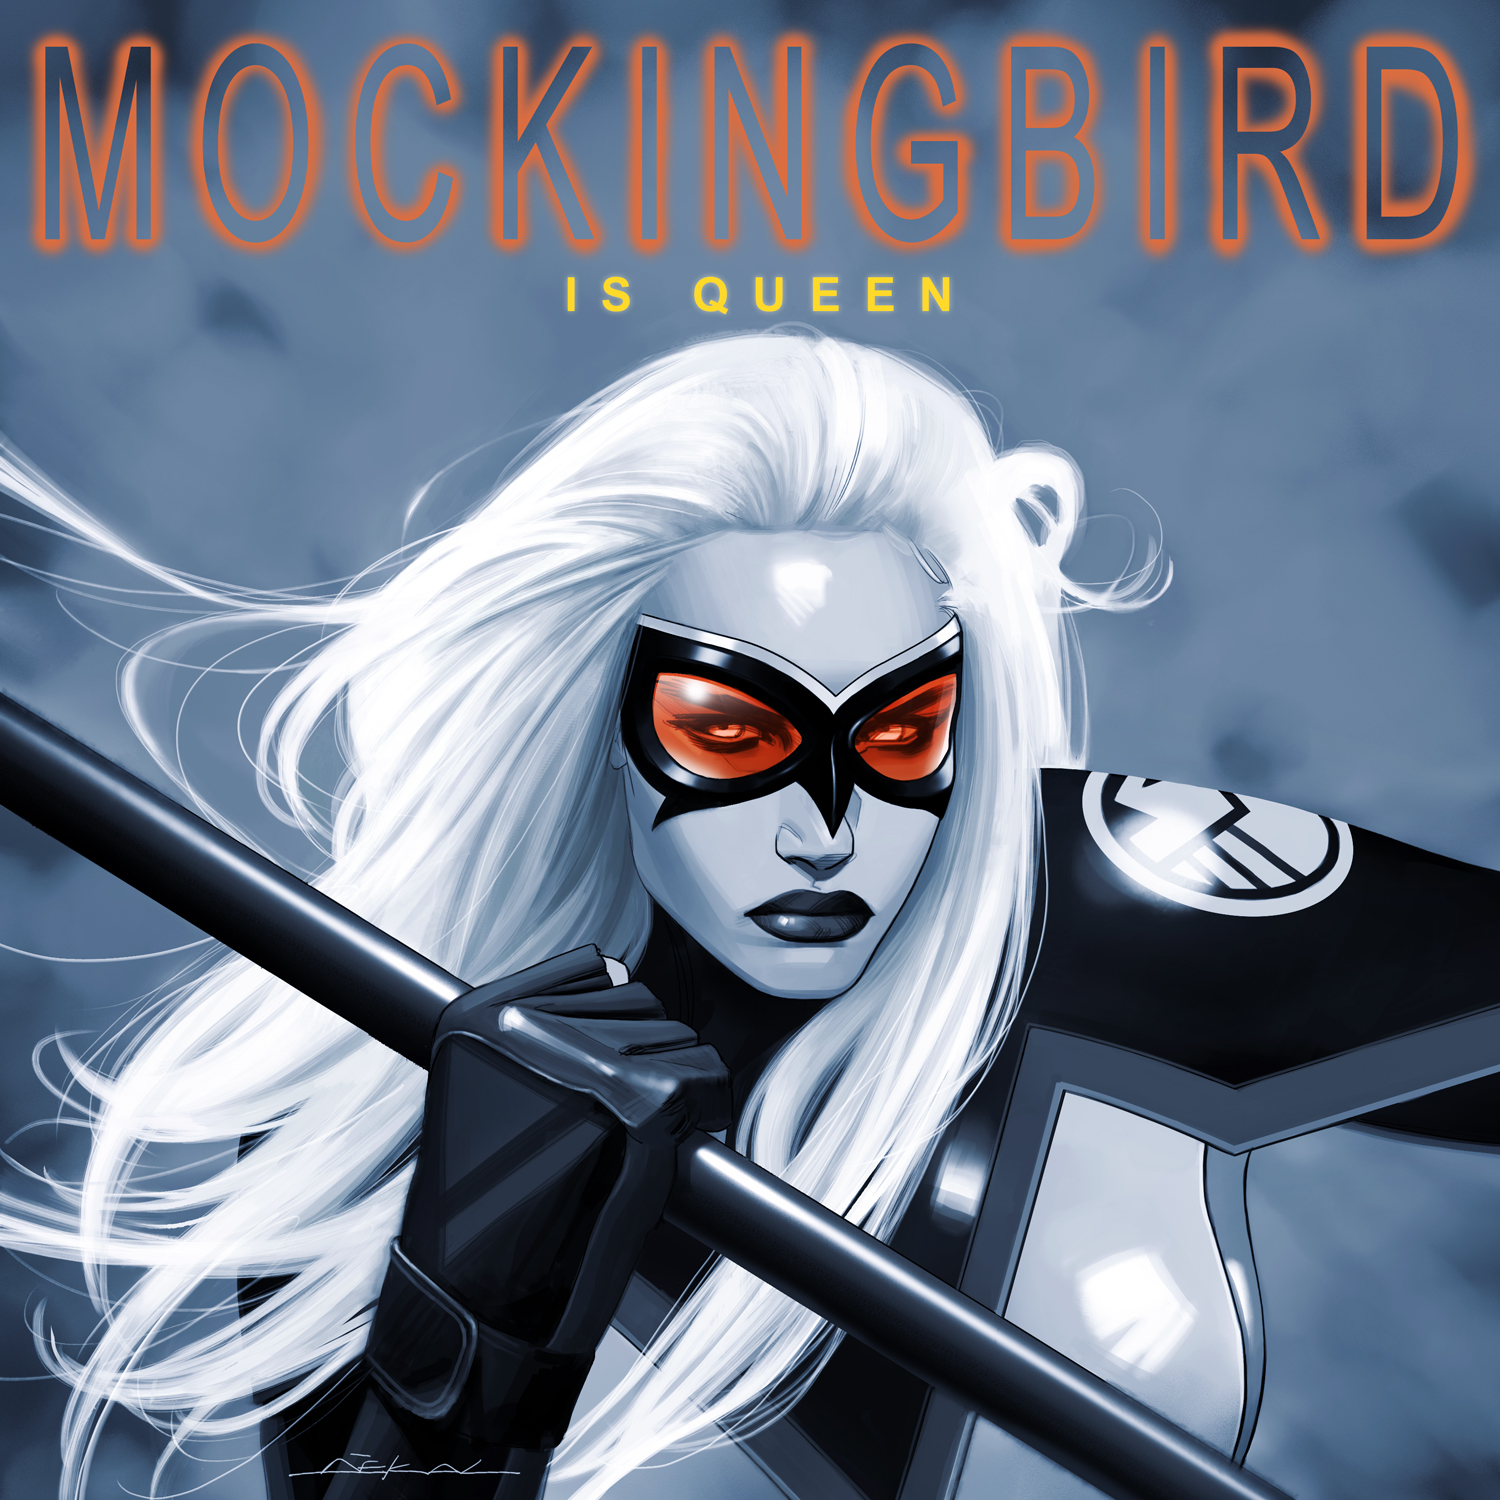 Mockingbird #1 Review